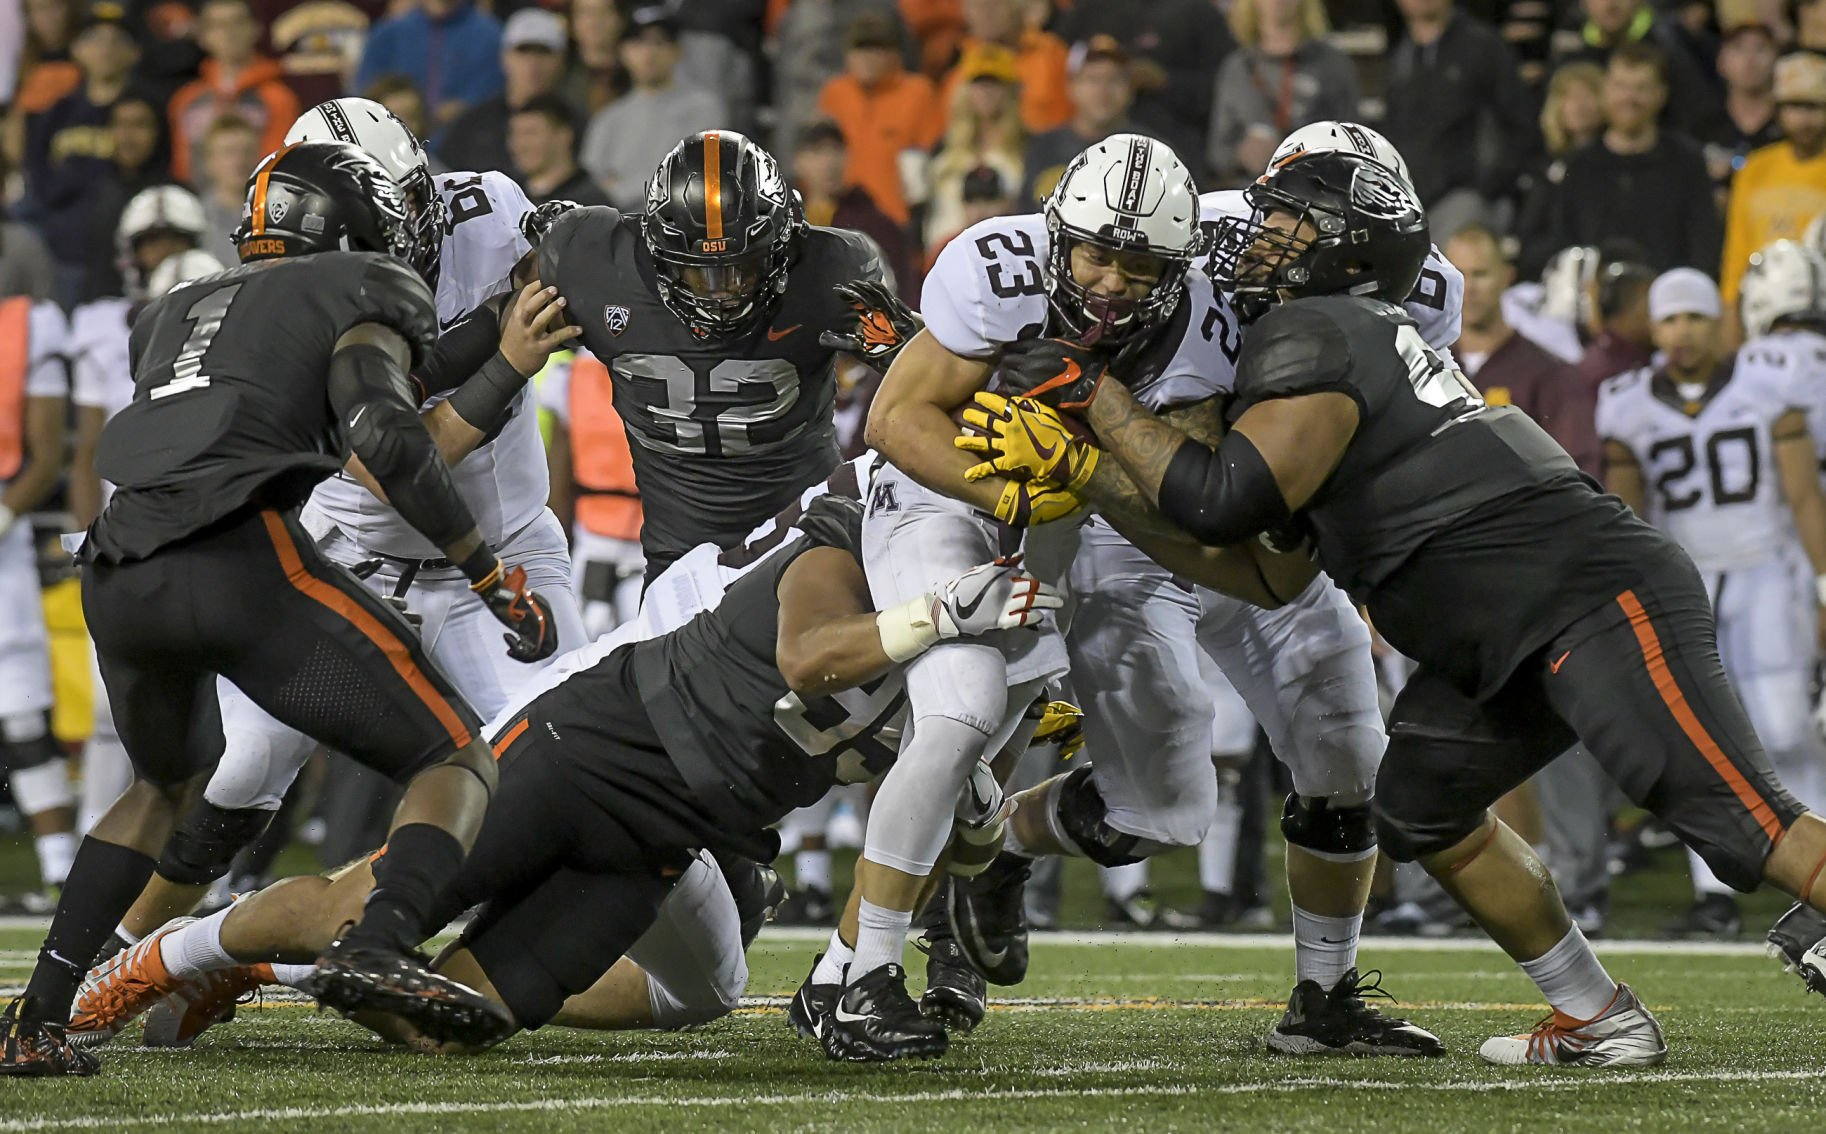 Minnesota rolls Oregon State as Beavers fall to 0-3